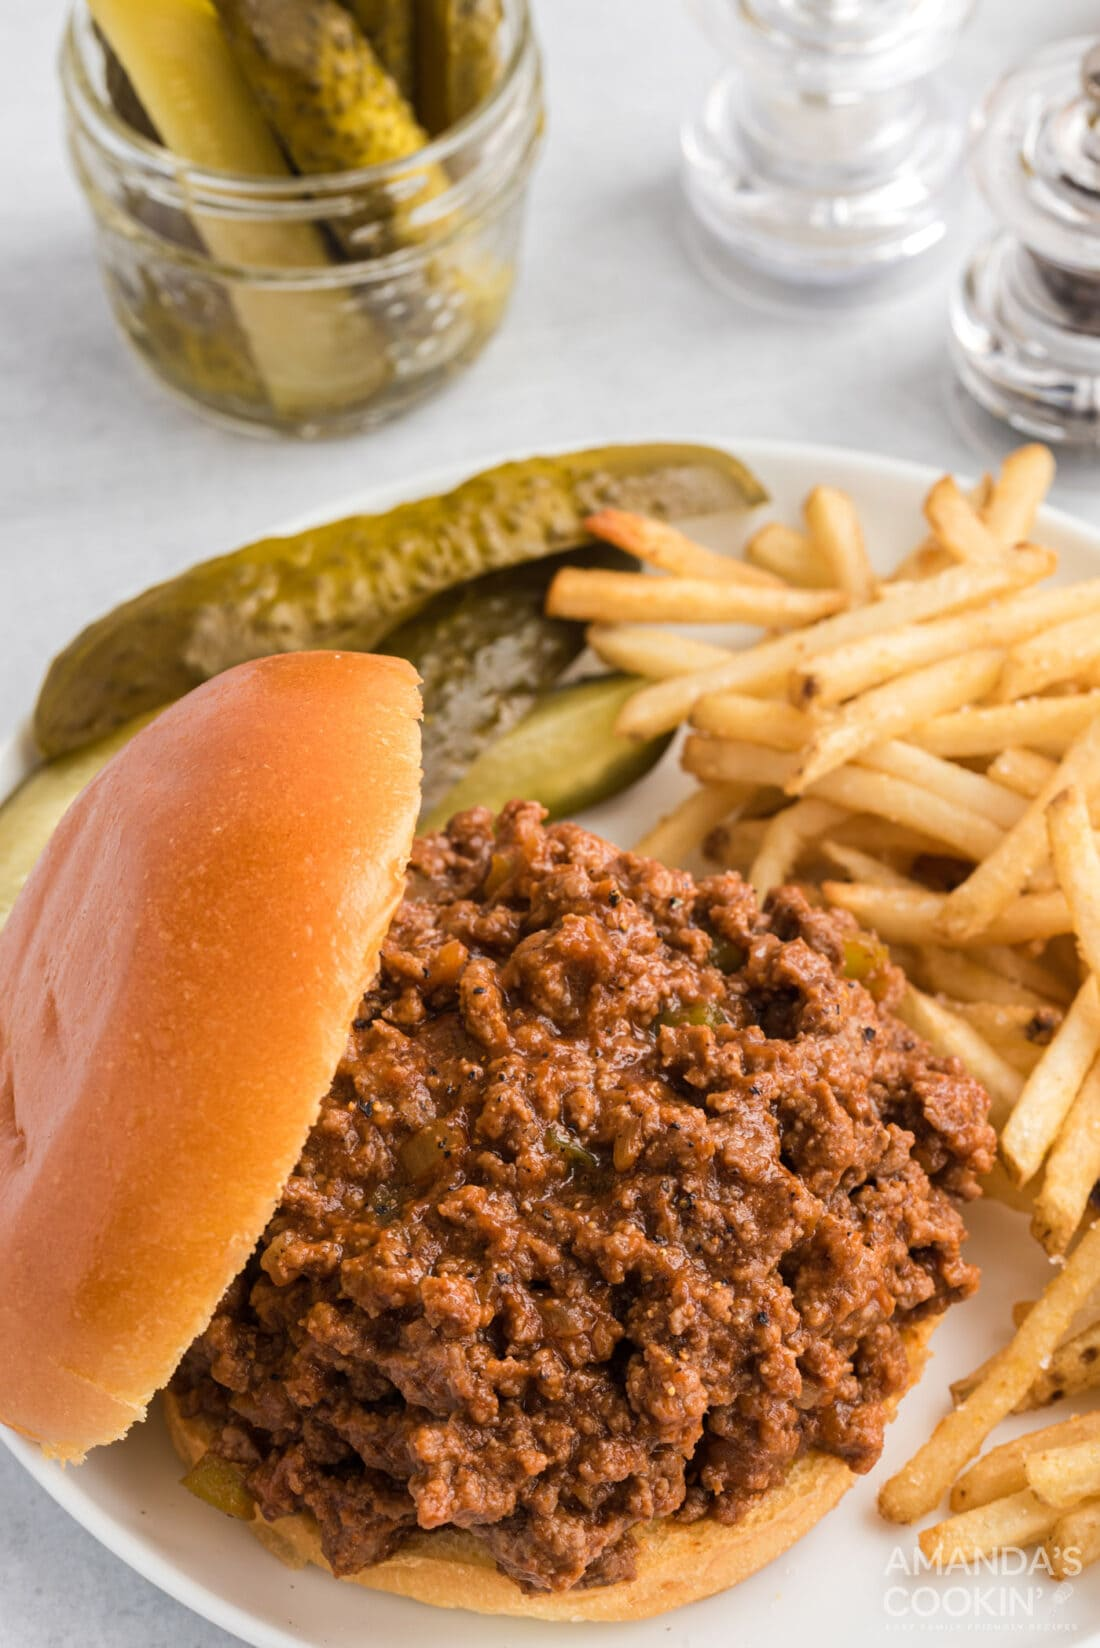 sloppy joes on a bun with fries